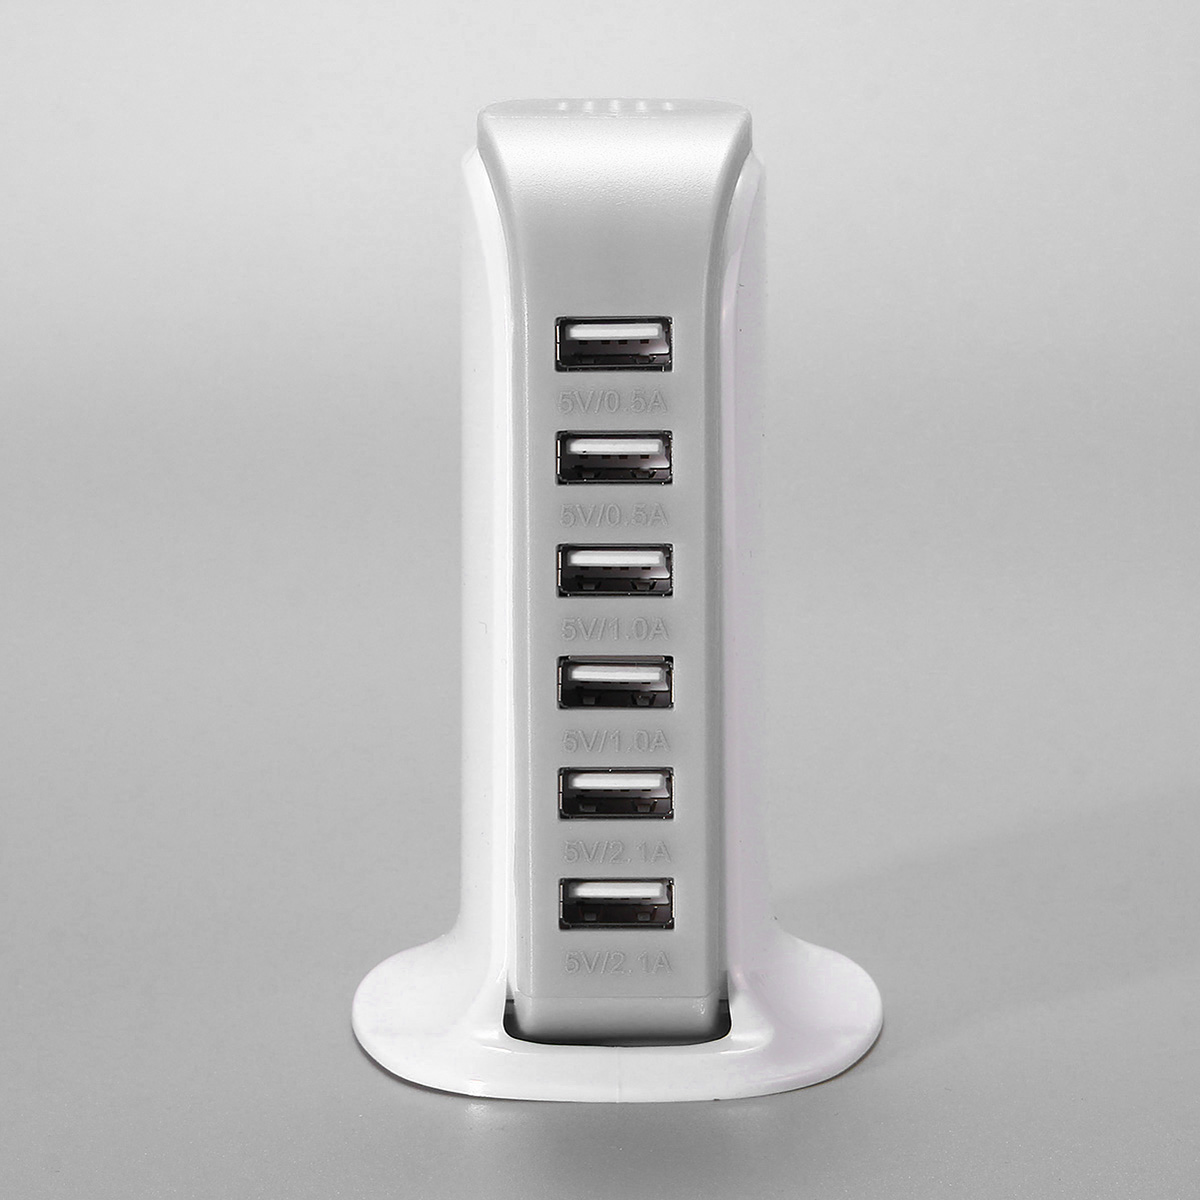 Multifunction 6 USB Ports Desktop Fast Charging Travel Wall Charger Station Power Adapter US Plug